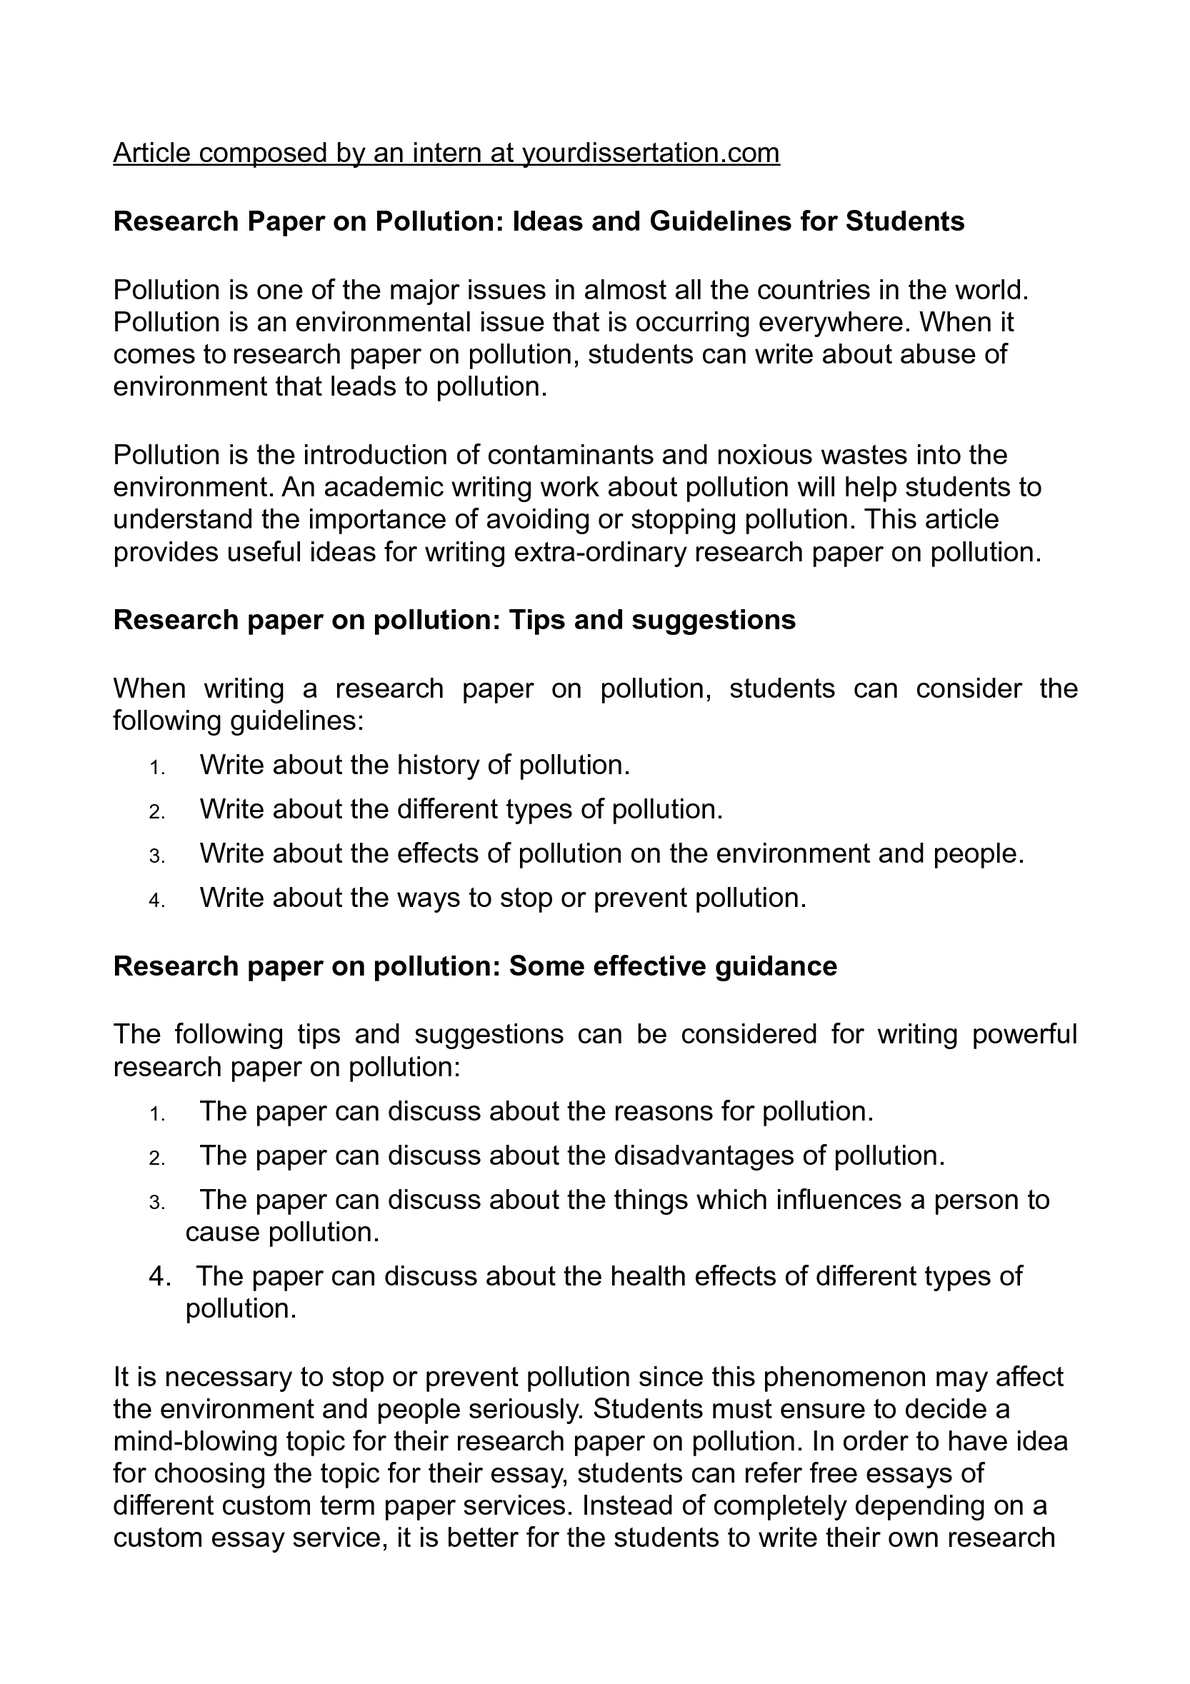 calam eacute o research paper on pollution ideas and guidelines for calameacuteo research paper on pollution ideas and guidelines for students